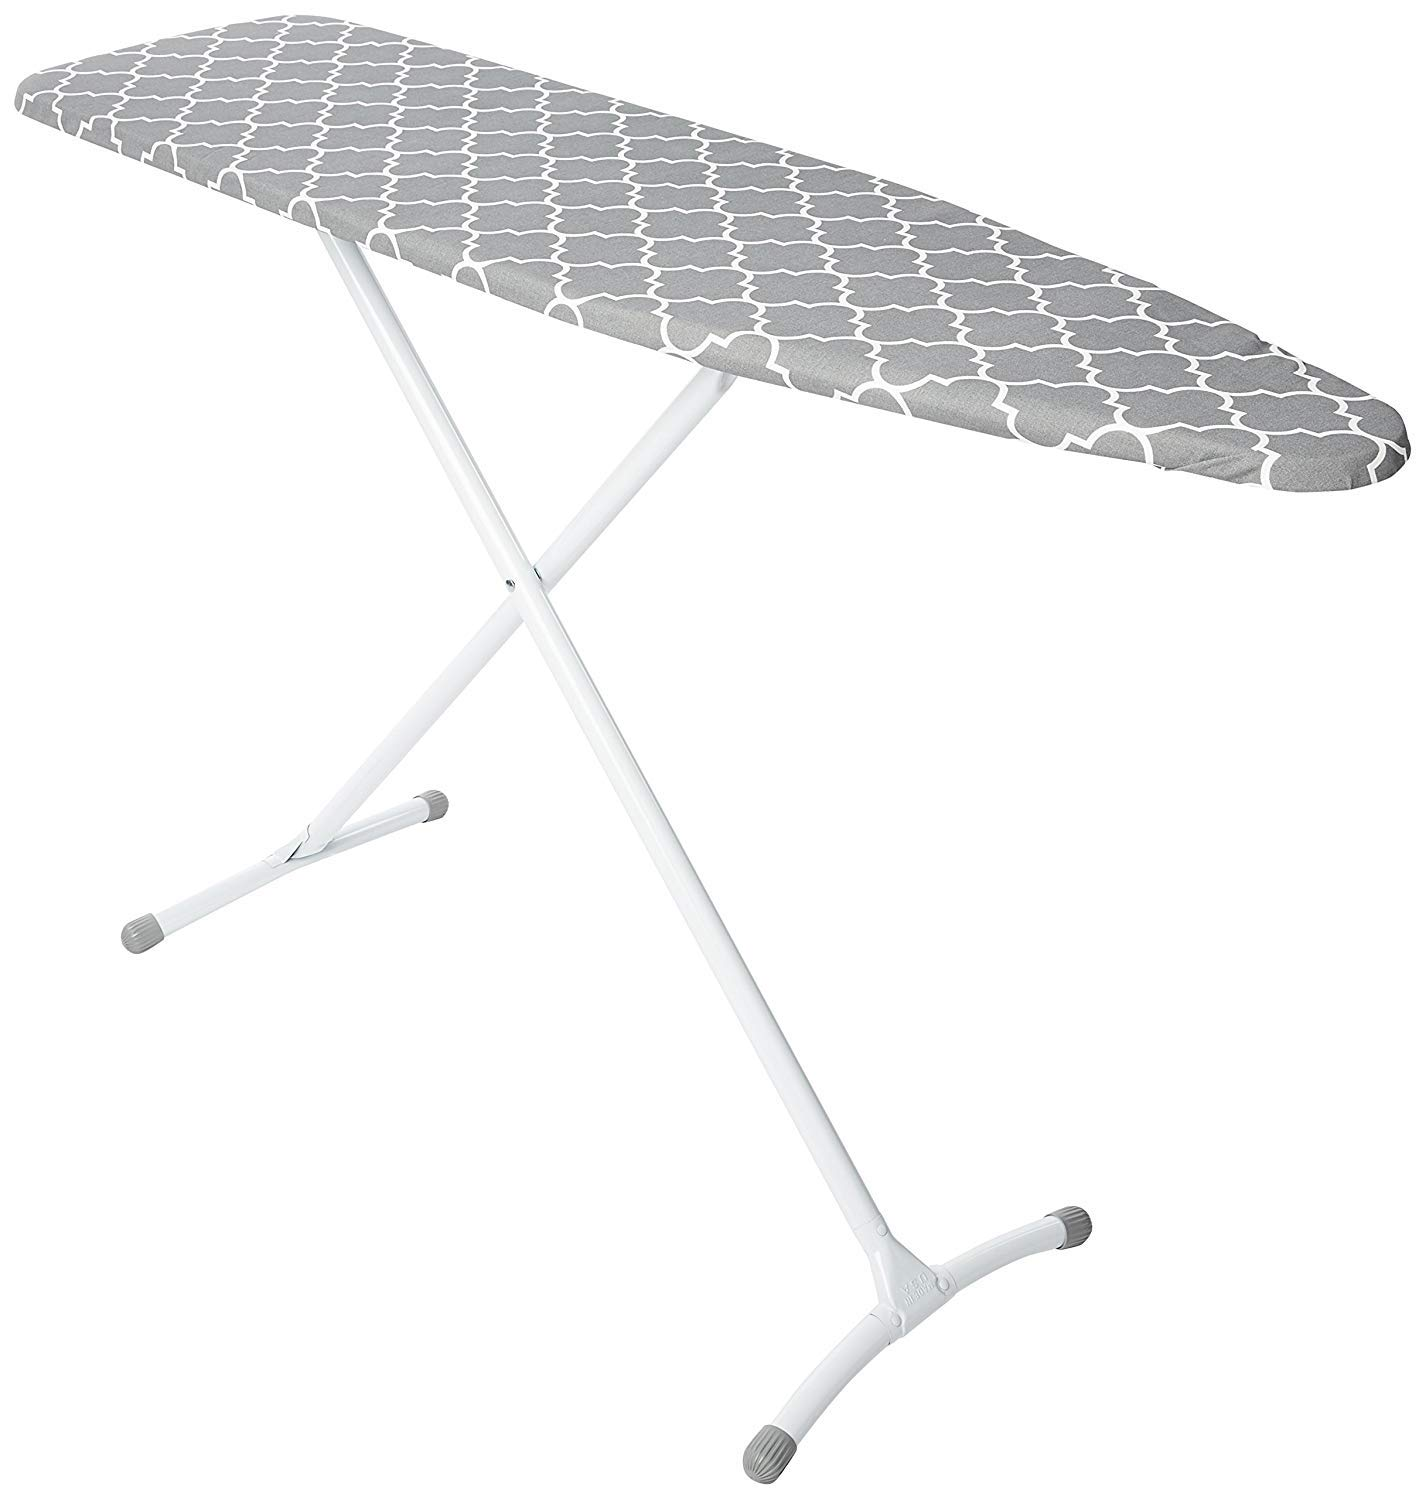 Homz Contour Steel Top Ironing Board, Grey & White Filigree Cover (Pack of 2) by Homz (Image #2)